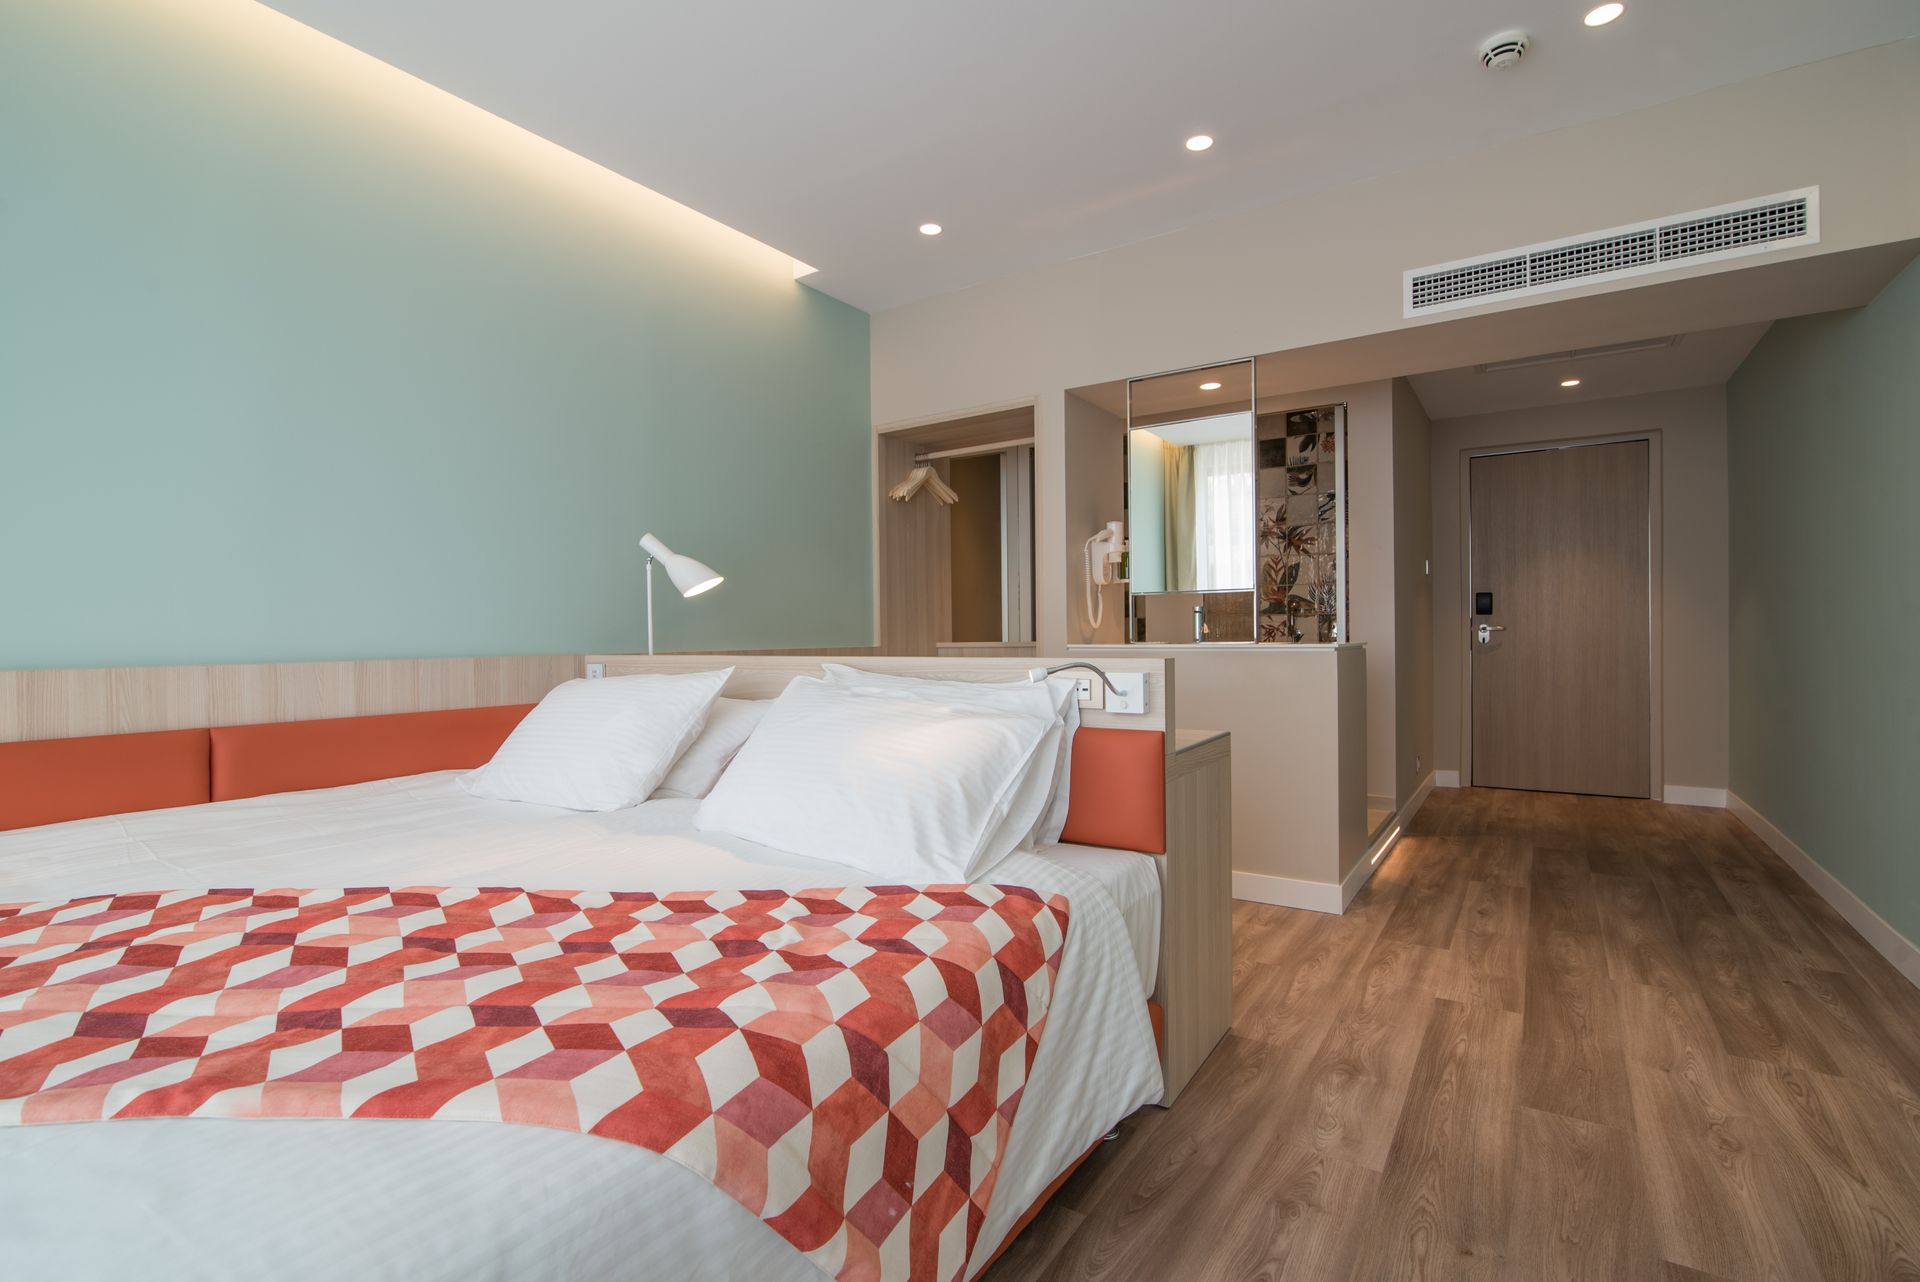 4* Kubic Athens Smart Hotel - Αθήνα ? 2 Ημέρες (1 Διανυκτέρευση) ? 2 άτομα ? Χωρίς Πρωινό ? έως 30/04/2020 ? Free WiFi